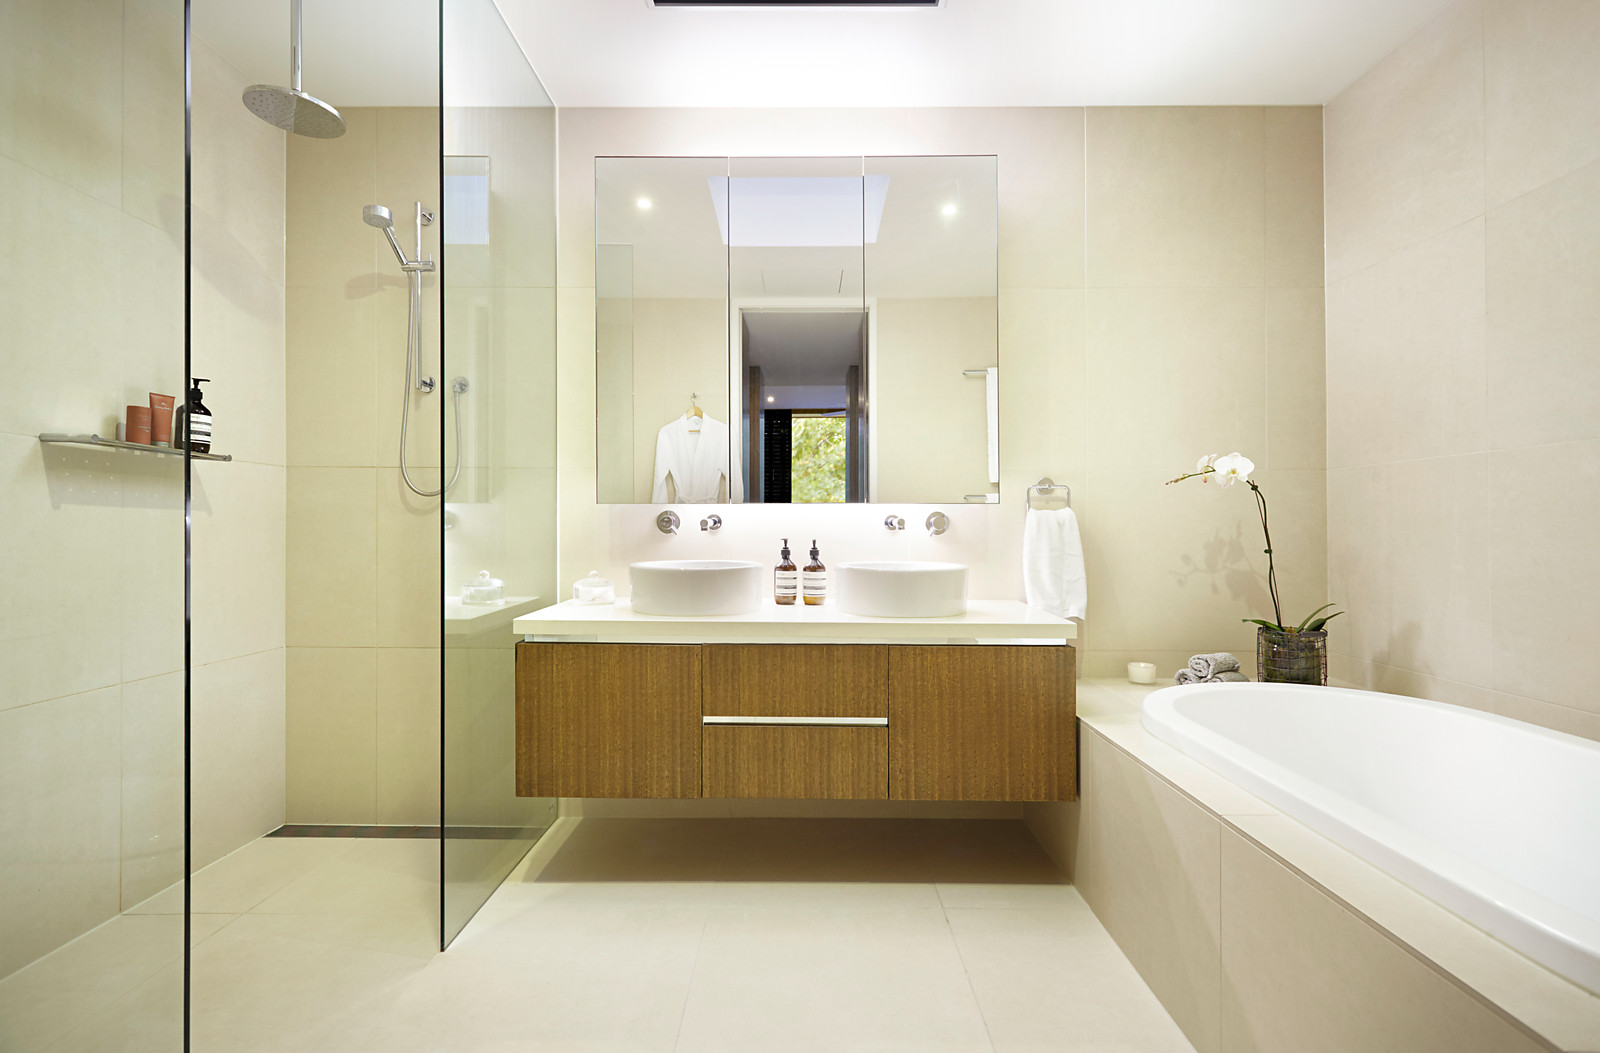 Bathroom Tile Painting Canberra renovating wet areas: what can you do yourself?